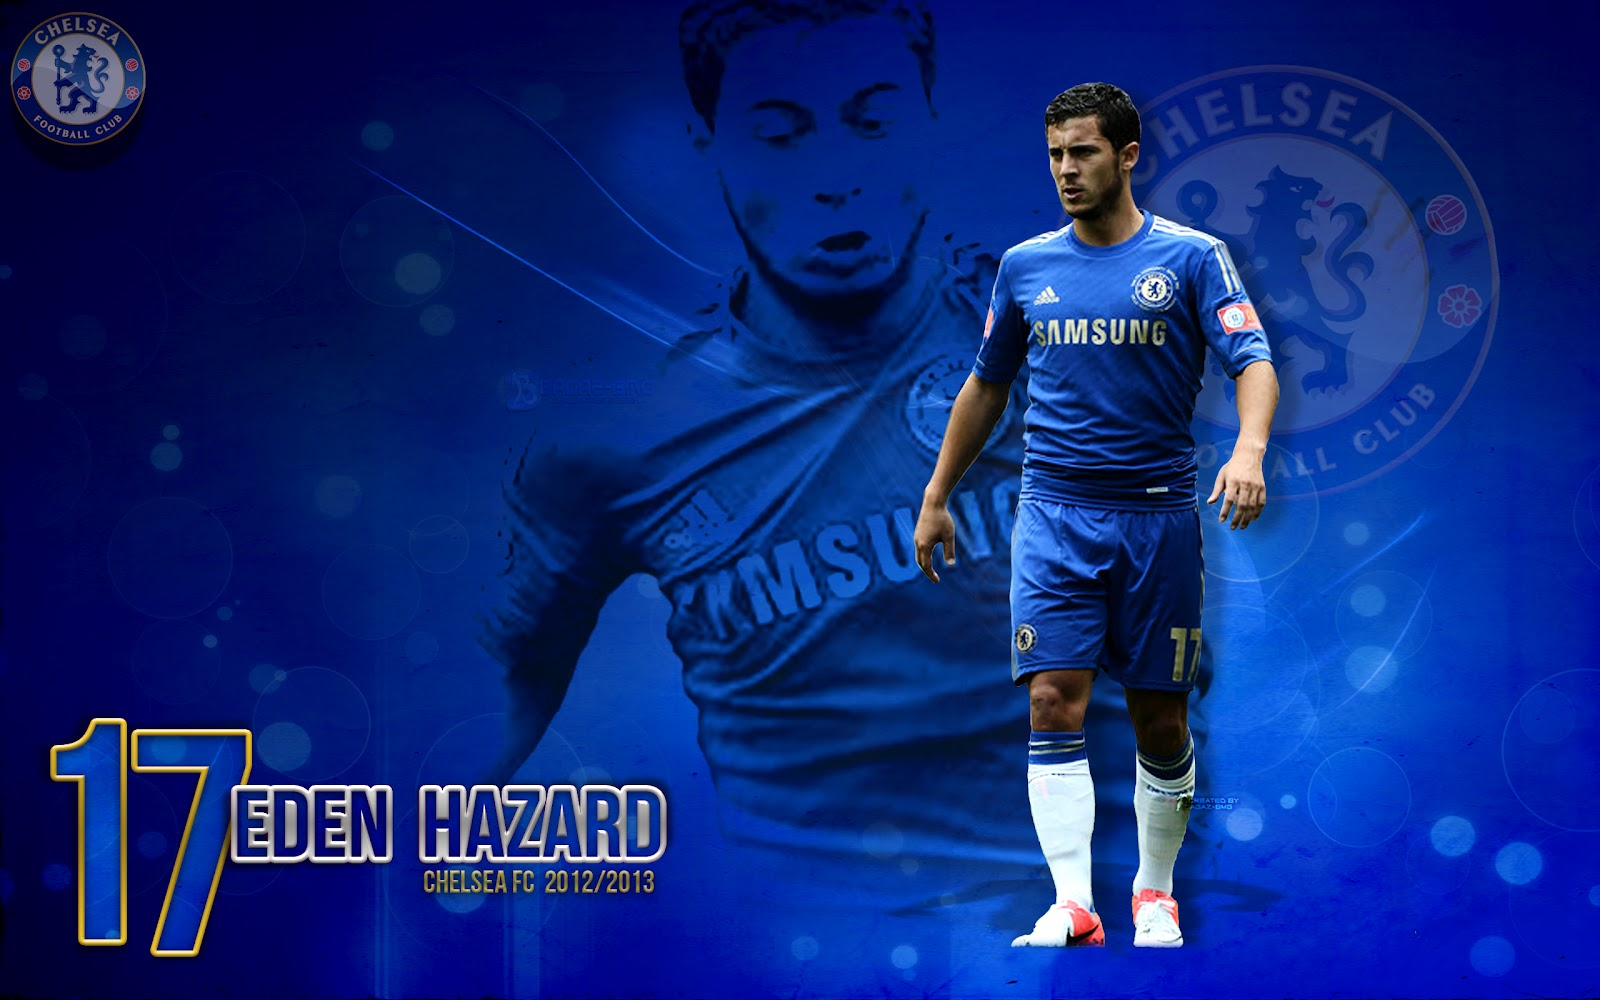 Eden Hazard Football Player New Hd on oscar chelsea fc wallpaper